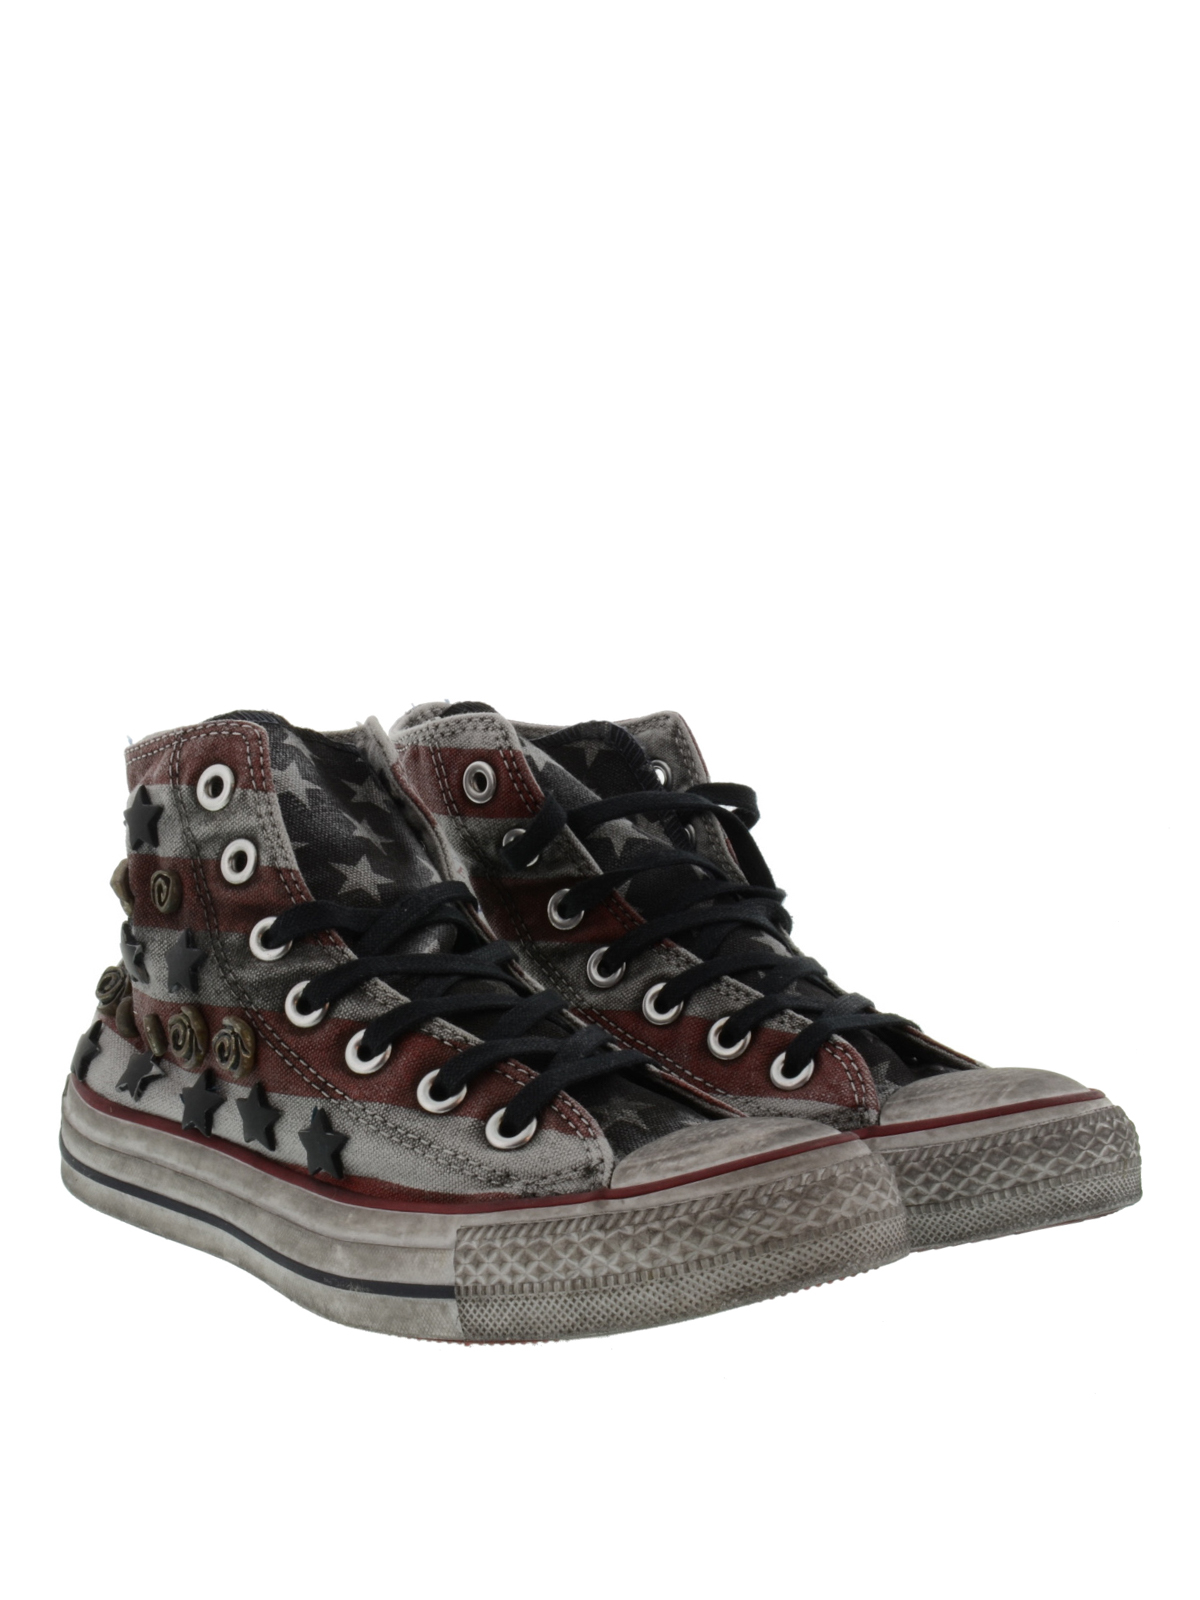 studded america sneakers by converse limited edition. Black Bedroom Furniture Sets. Home Design Ideas